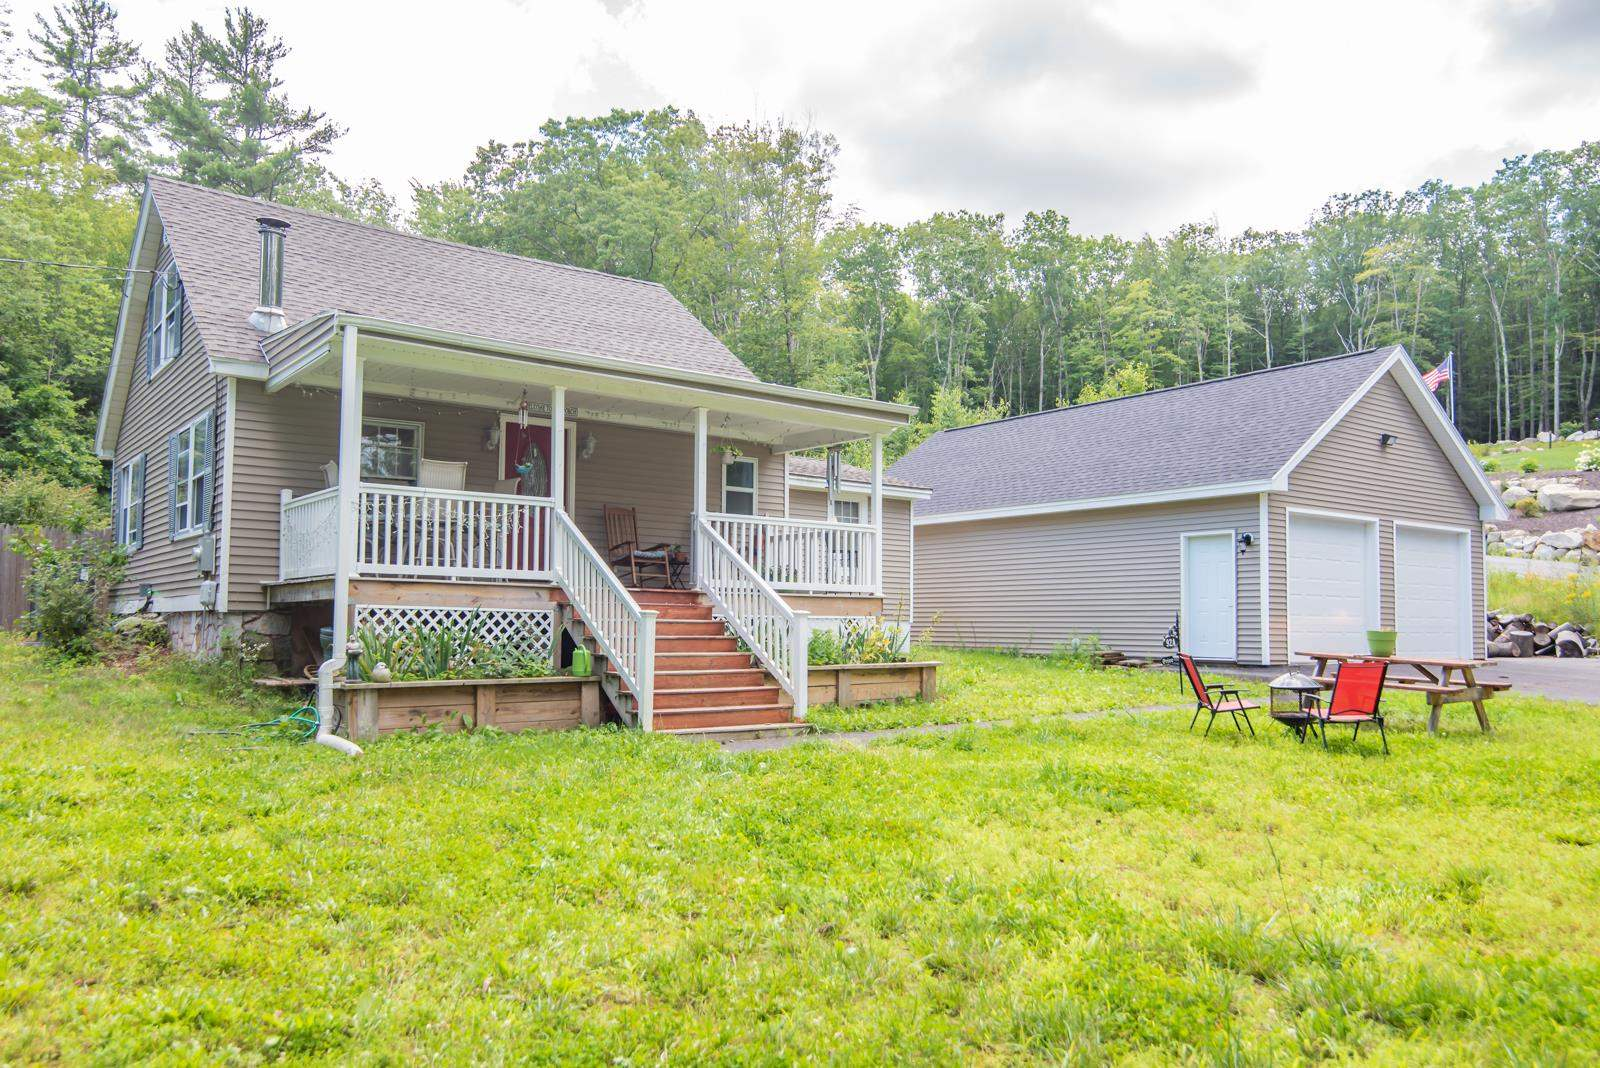 Photo of 92A Wallace Road Goffstown NH 03045